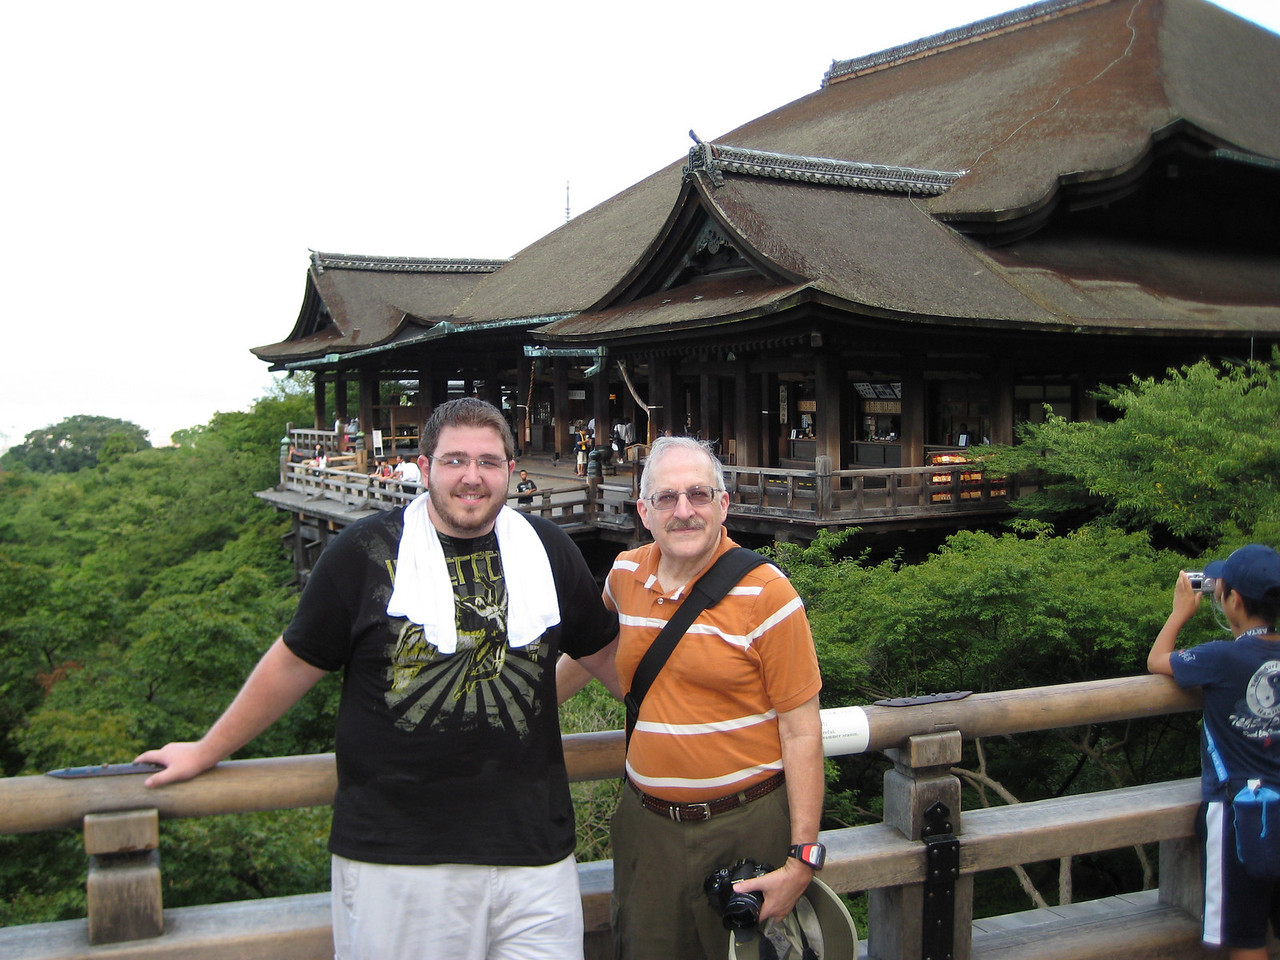 My son Josh and me (John) in a traditional photo shot in front of the main hall